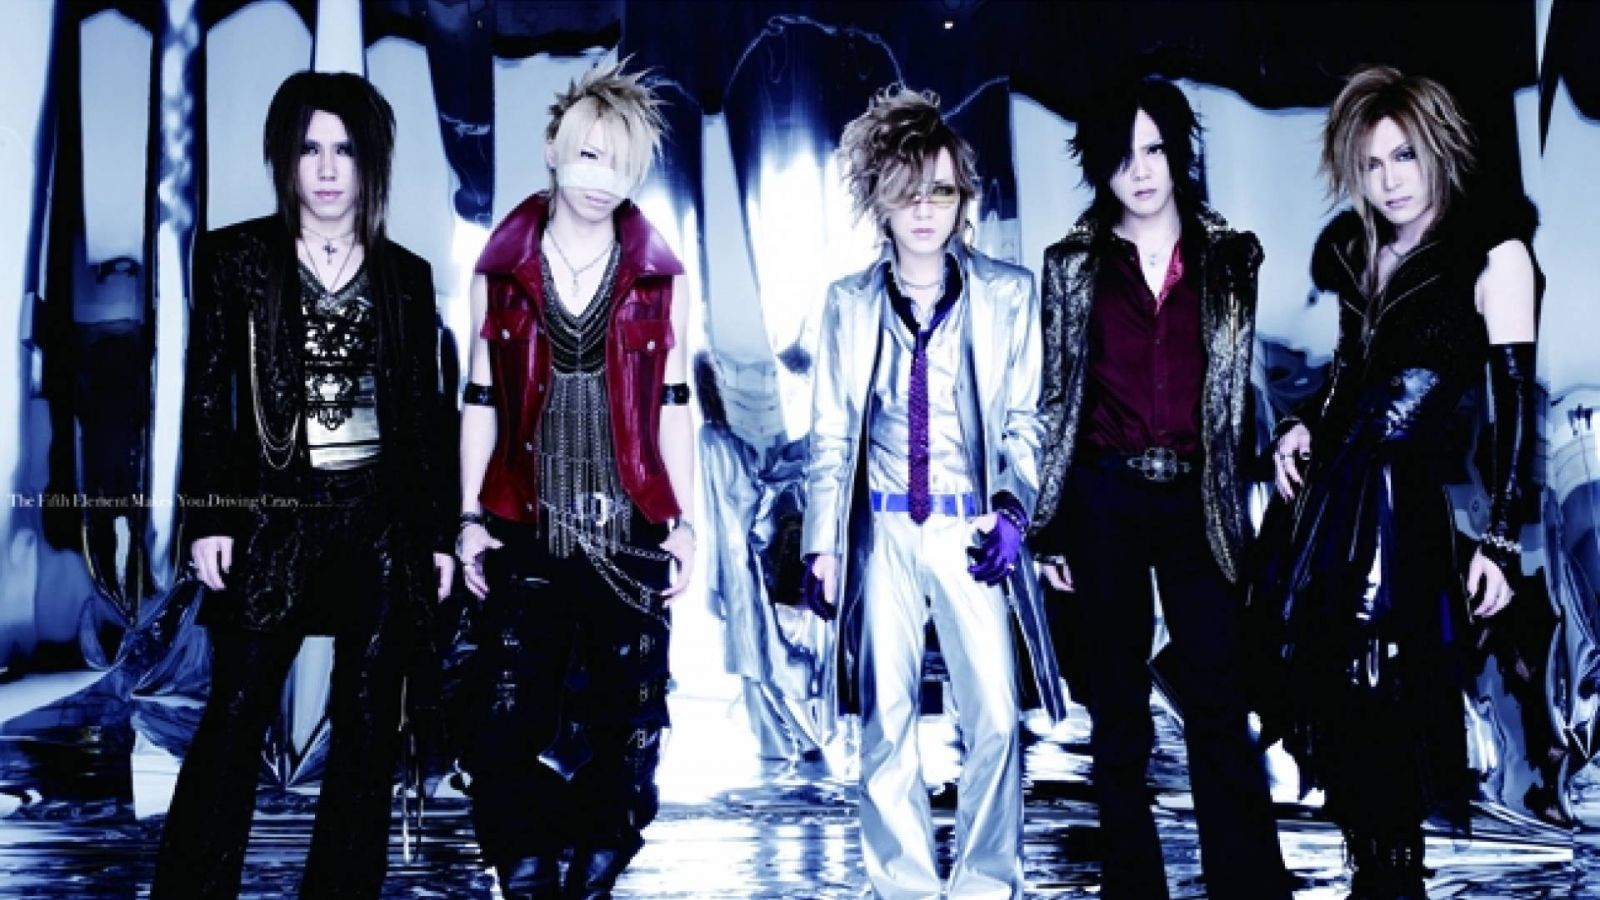 Zy 41: the GazettE © 2008 Zy.connection Inc. All Rights Reserved.